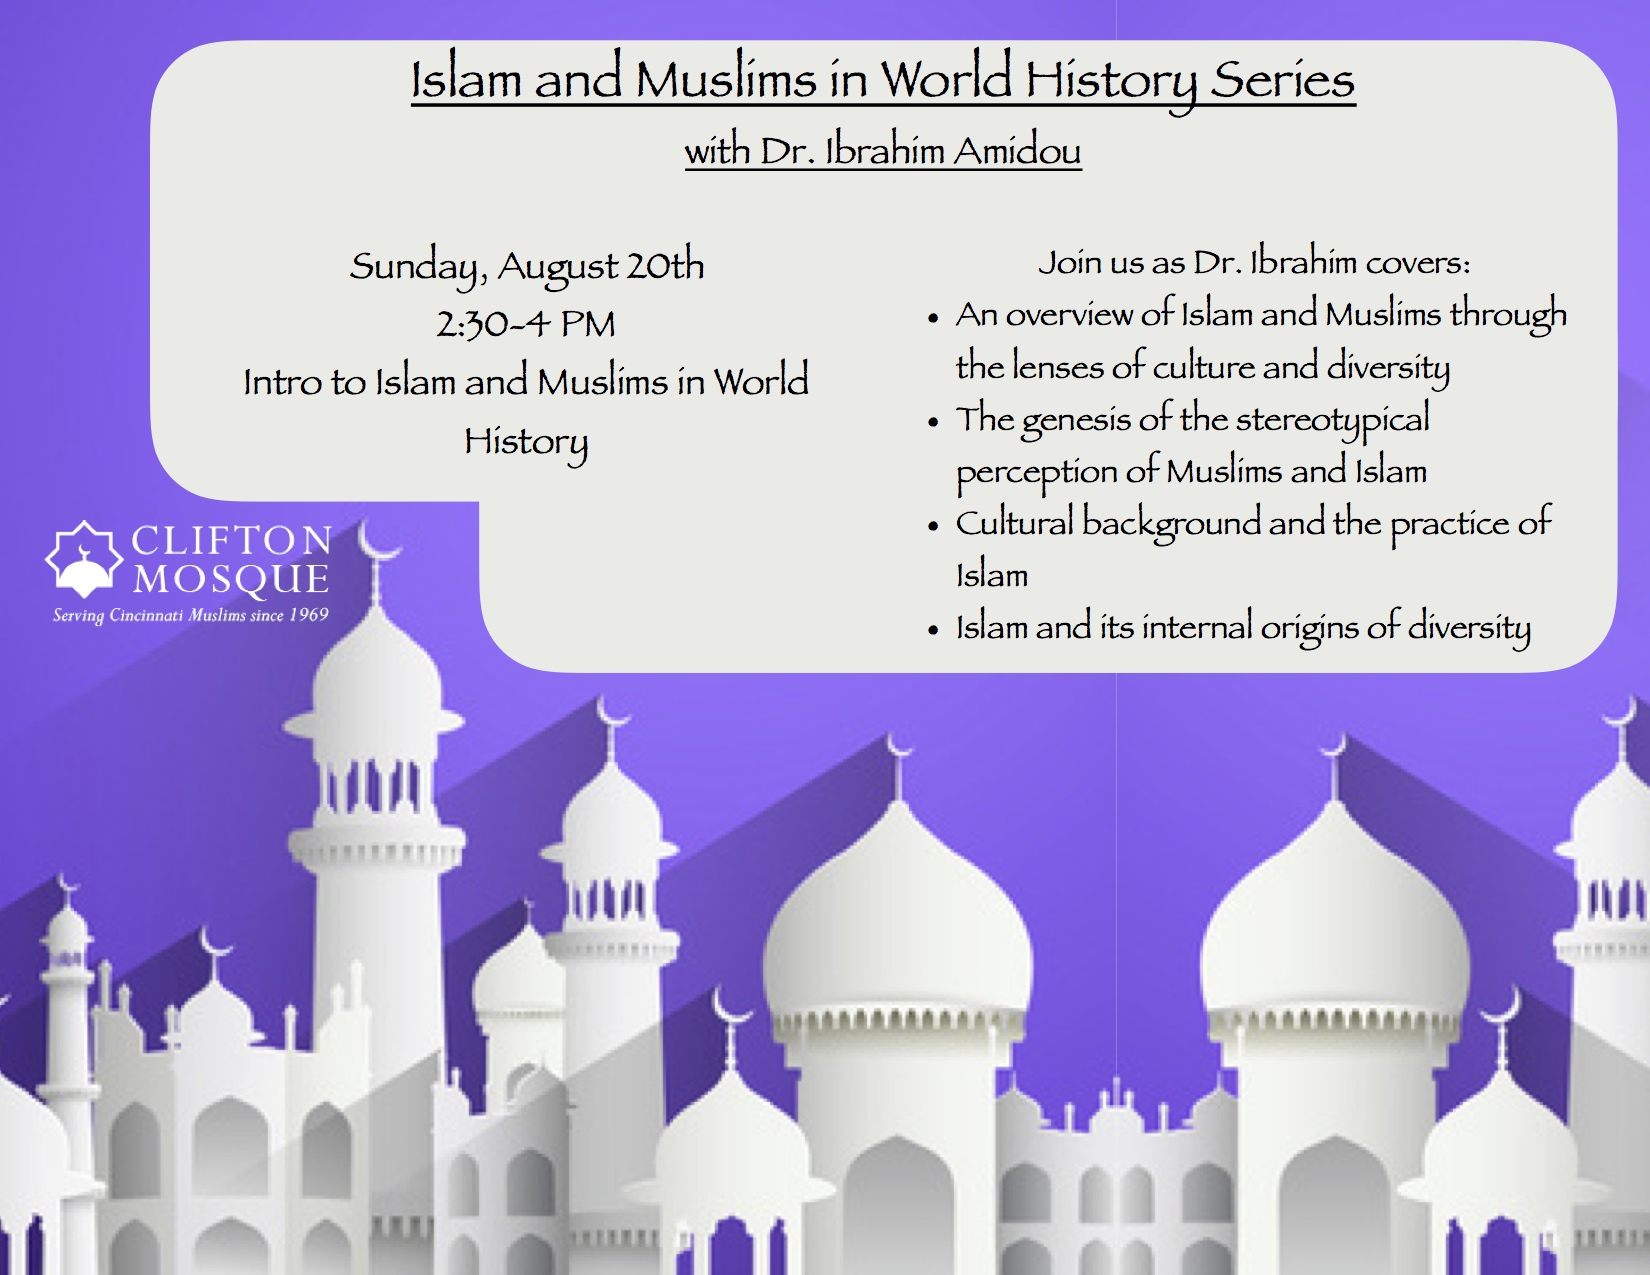 Join us as Brother Ibrahim Amidou teaches the introduction to the Series for Muslims and Islam in World History.